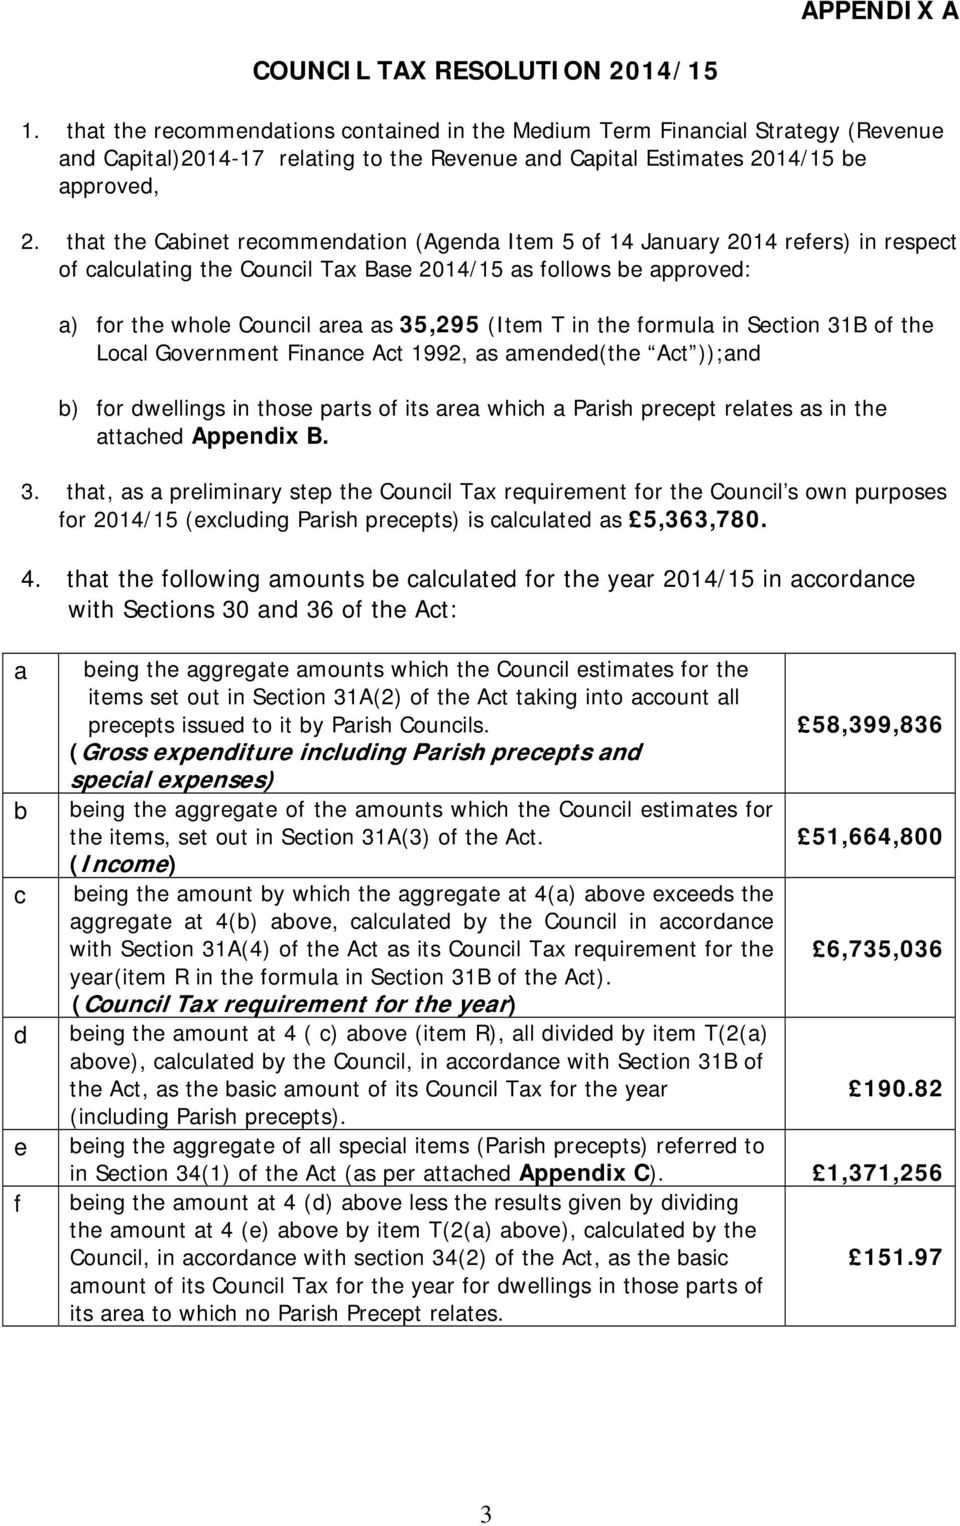 that the Cabinet recommendation (Agenda Item 5 of 14 January 2014 refers) in respect of calculating the Council Tax Base 2014/15 as follows be approved: a) for the whole Council area as 35,295 (Item